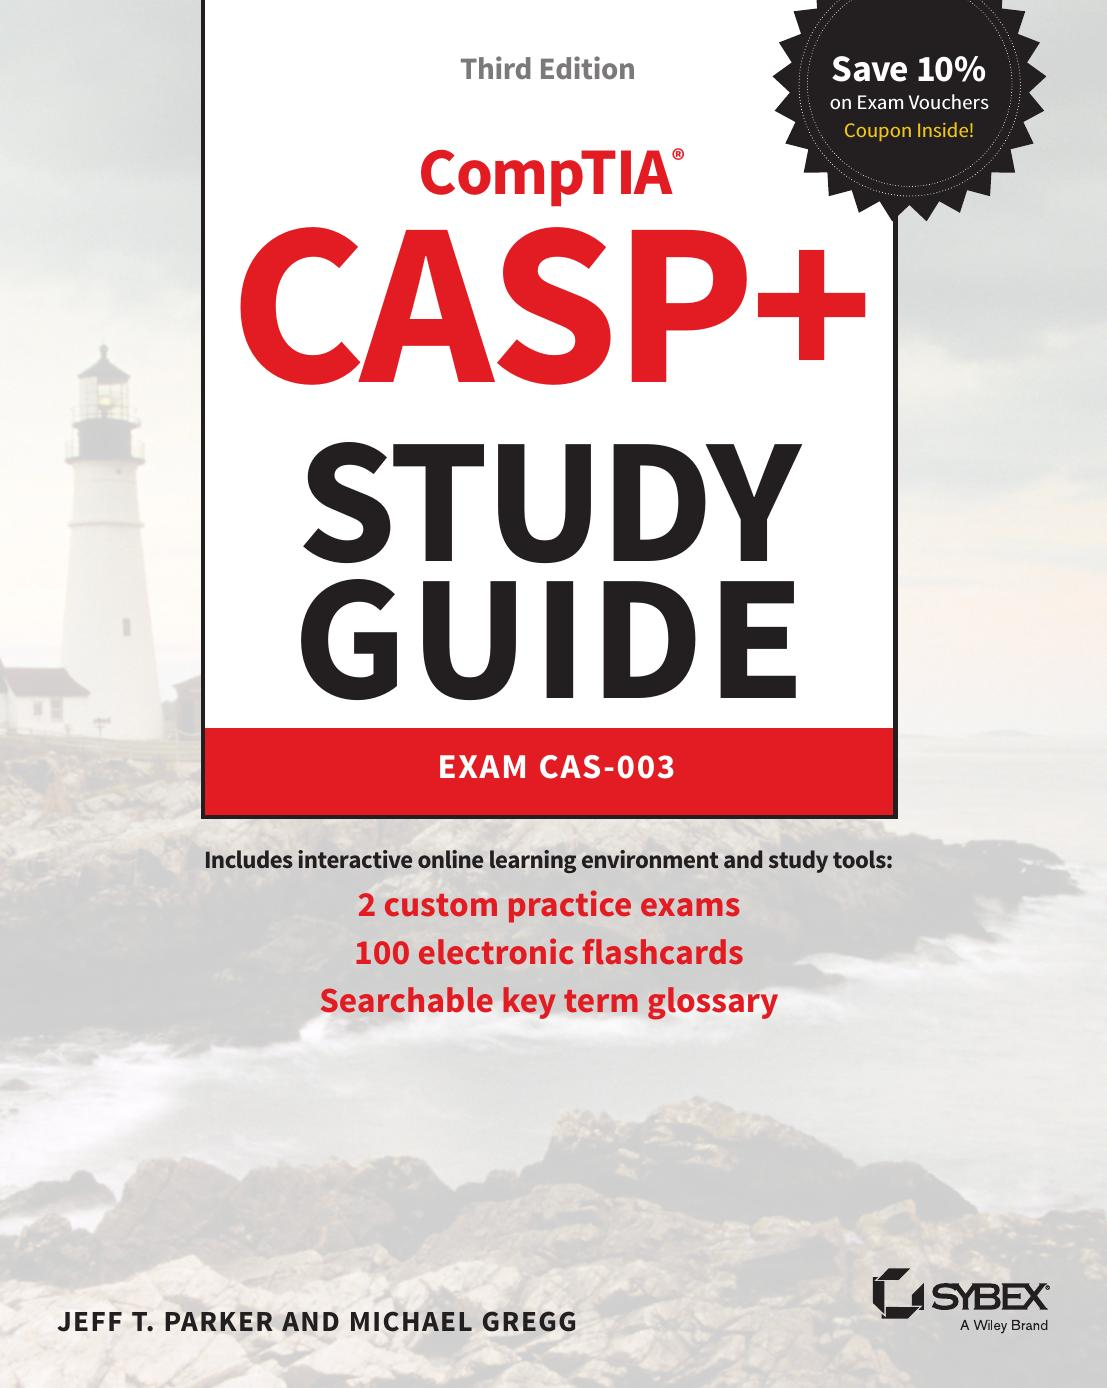 CASP+ CompTIA Advanced Security Practitioner Study Guide: Exam CAS-003 3rd Edition Pdf Free Download